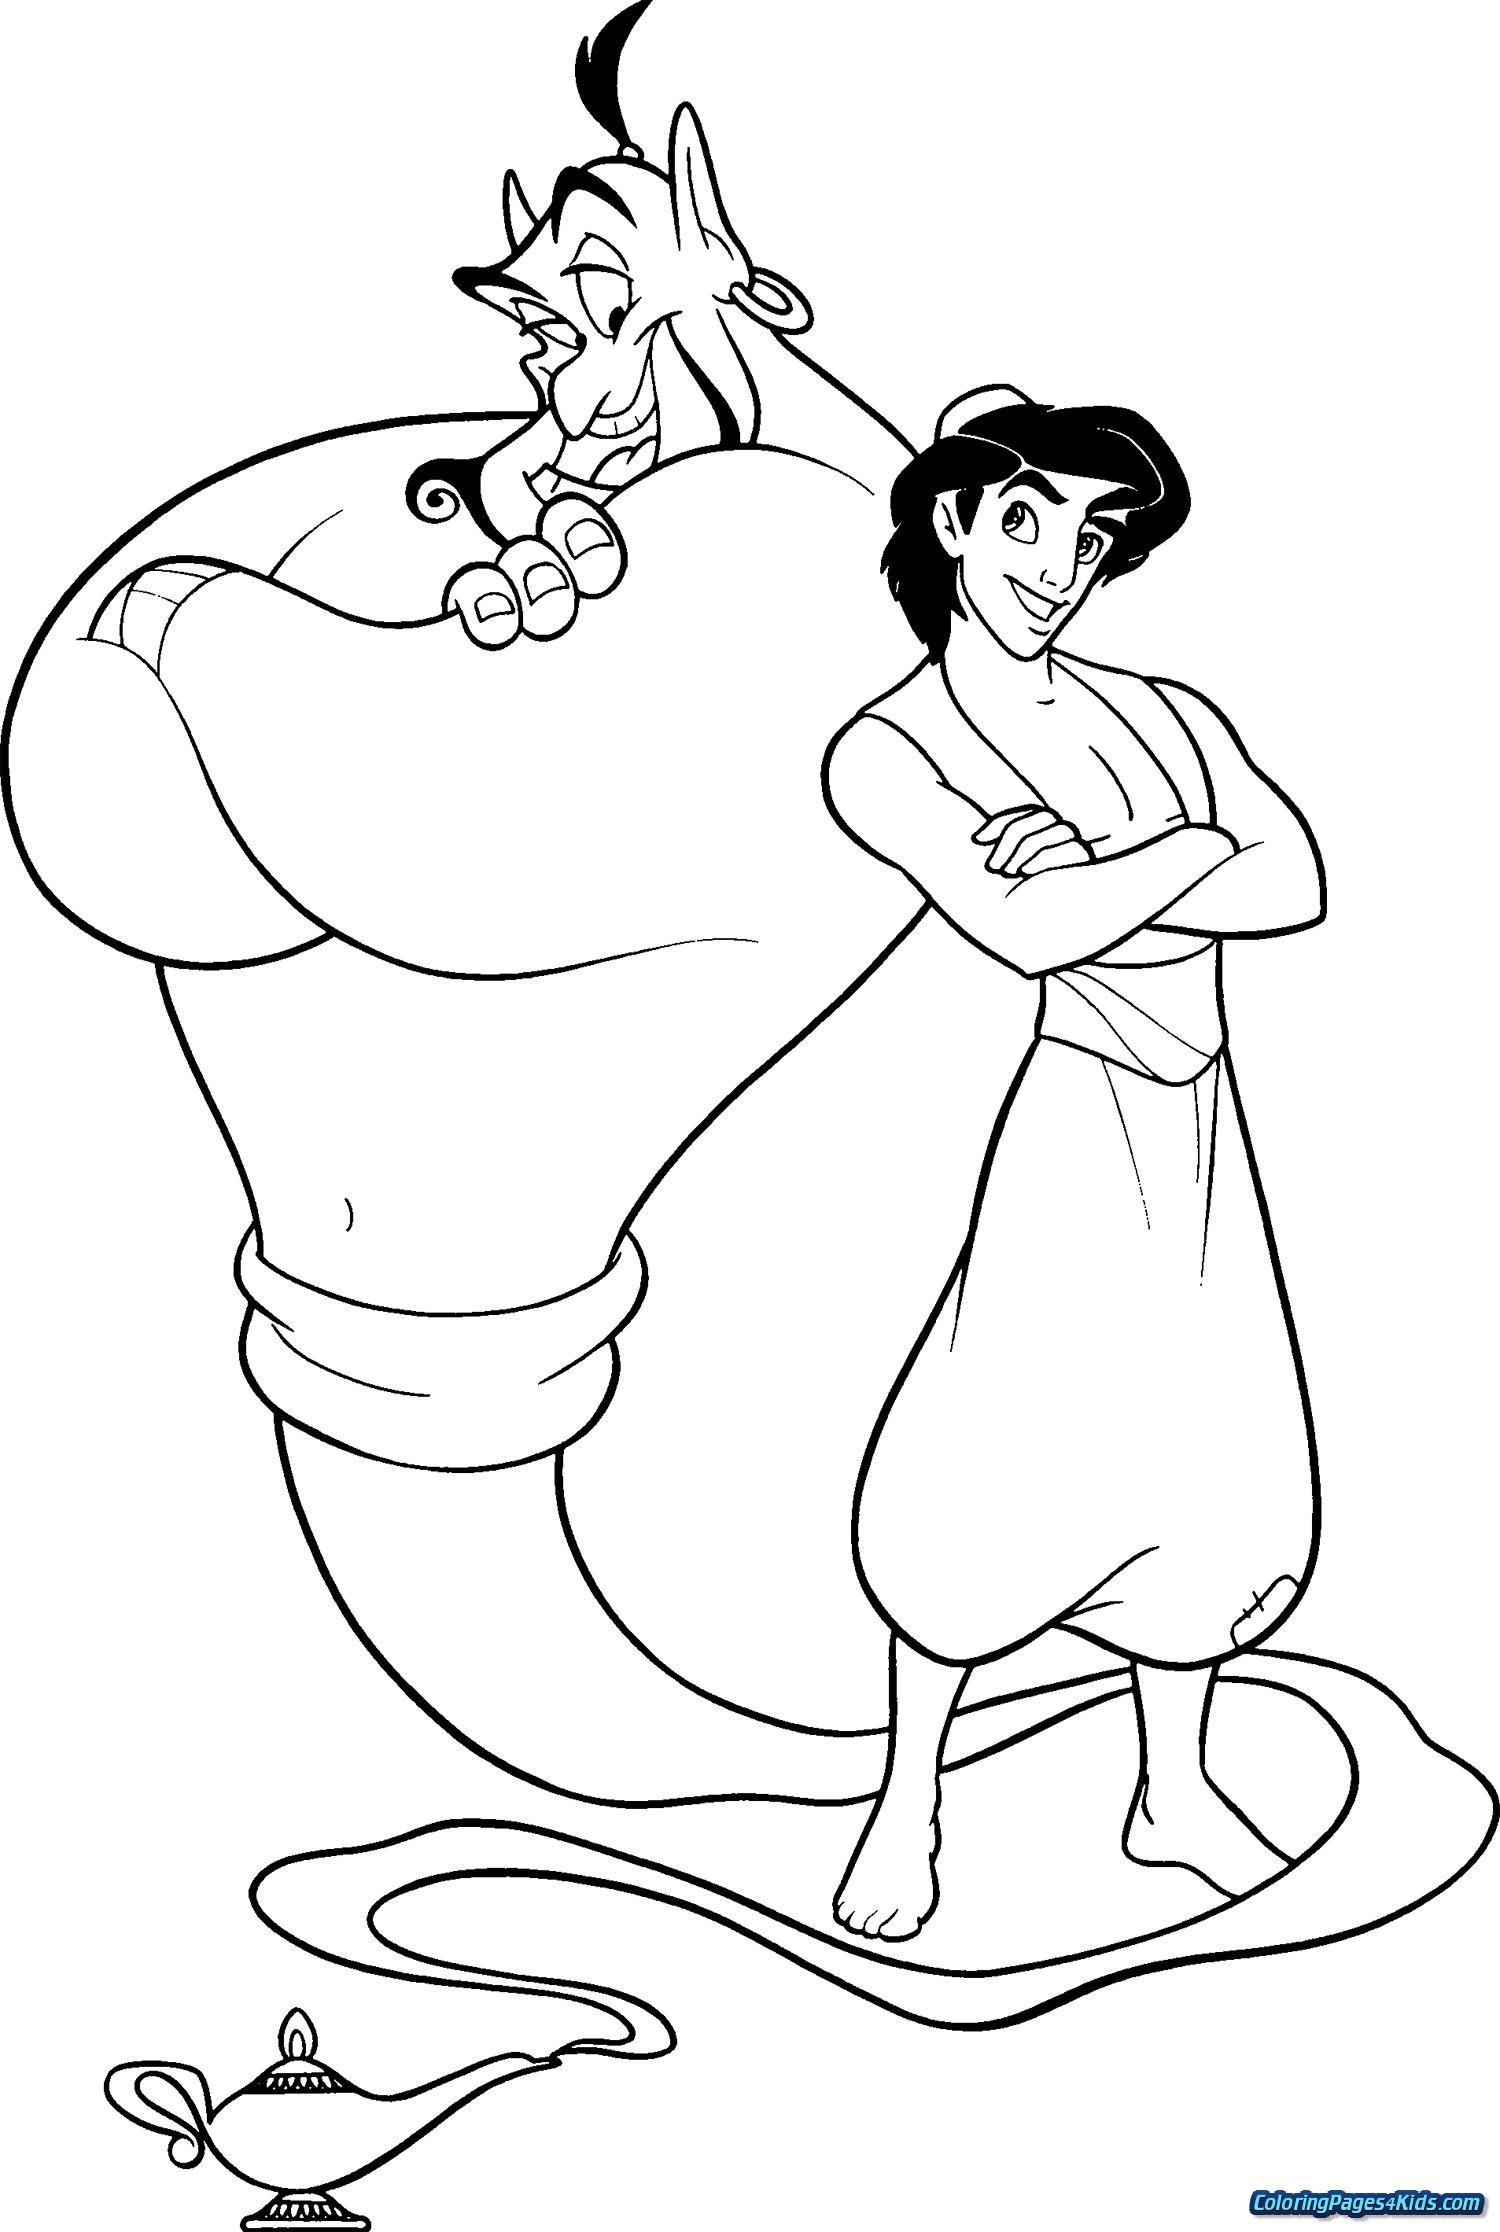 Aladdin Coloring Pages Aladdin And Jasmine Coloring Pages Free